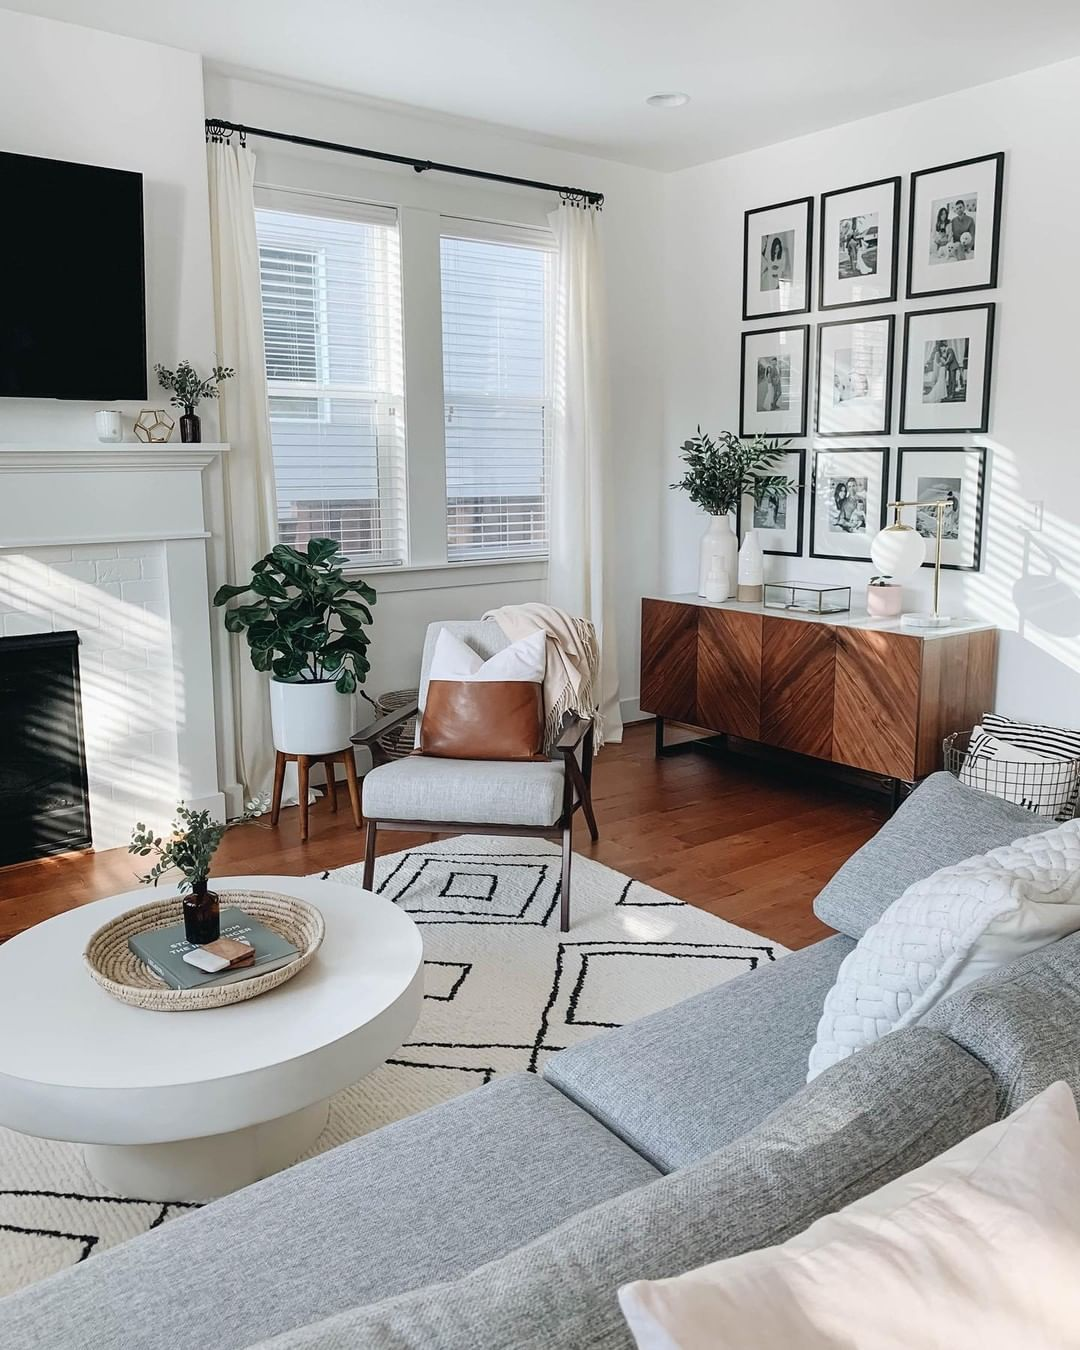 Ltkhome On Instagram Mid Century Modern Living Room Details Care Of Crystalinmarie Shop Th Open Living Room Interior Design Living Room Living Room Inspo